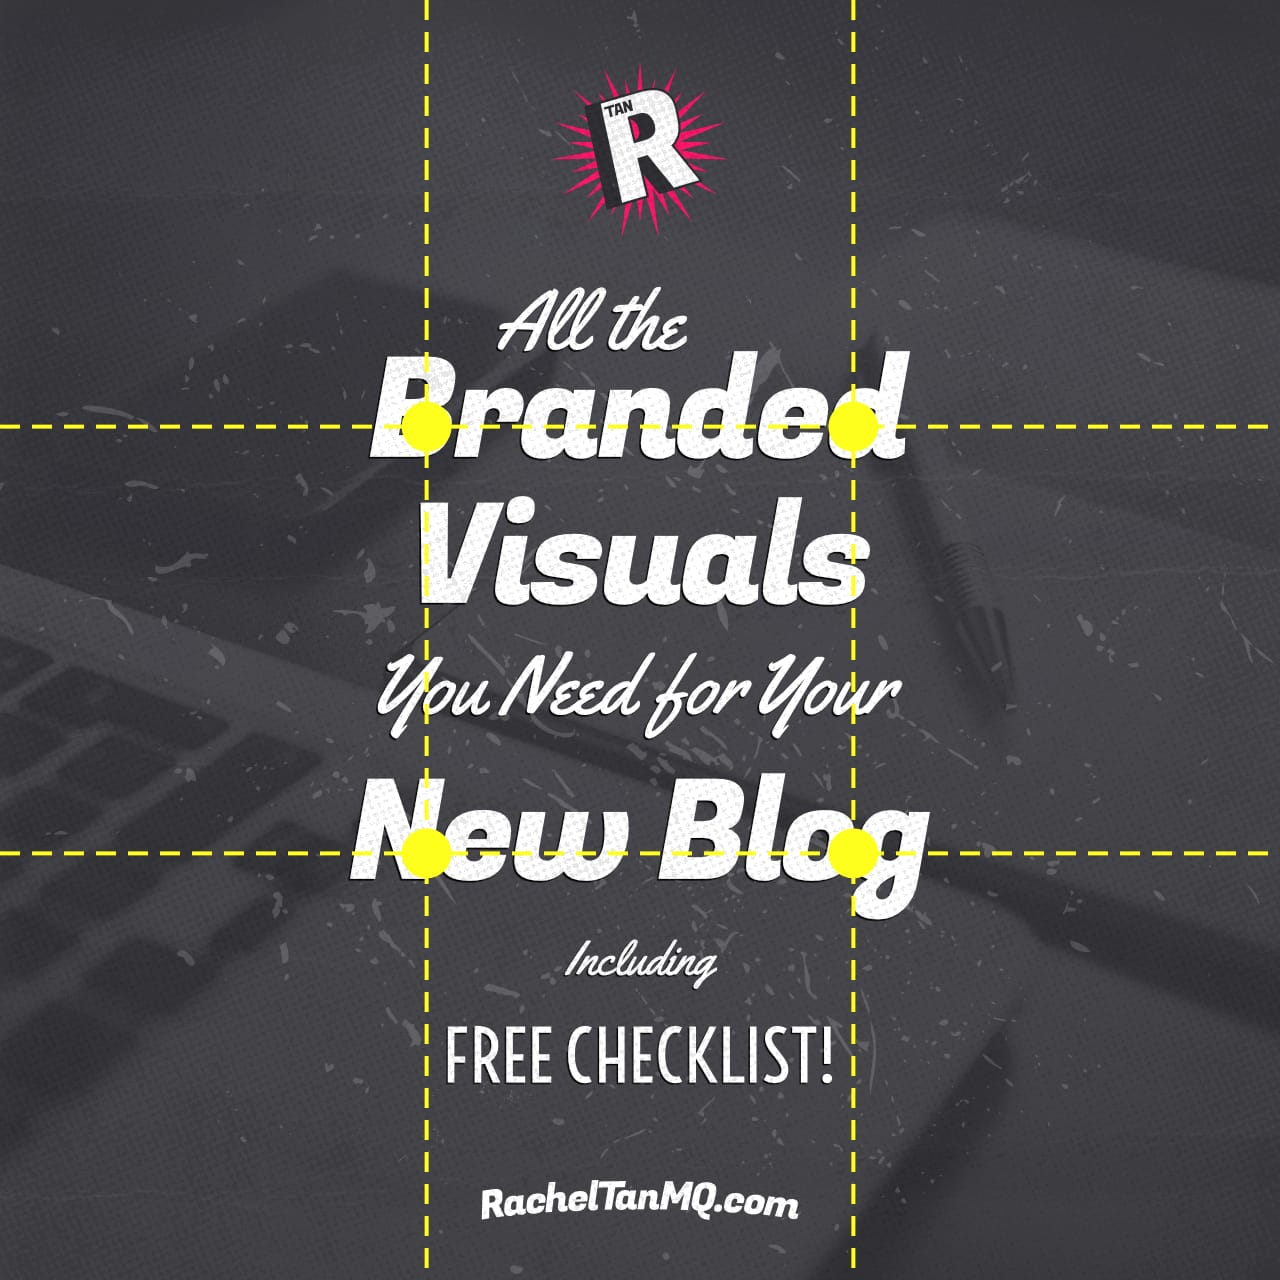 Use the rule of thirds to easily compose your visuals.